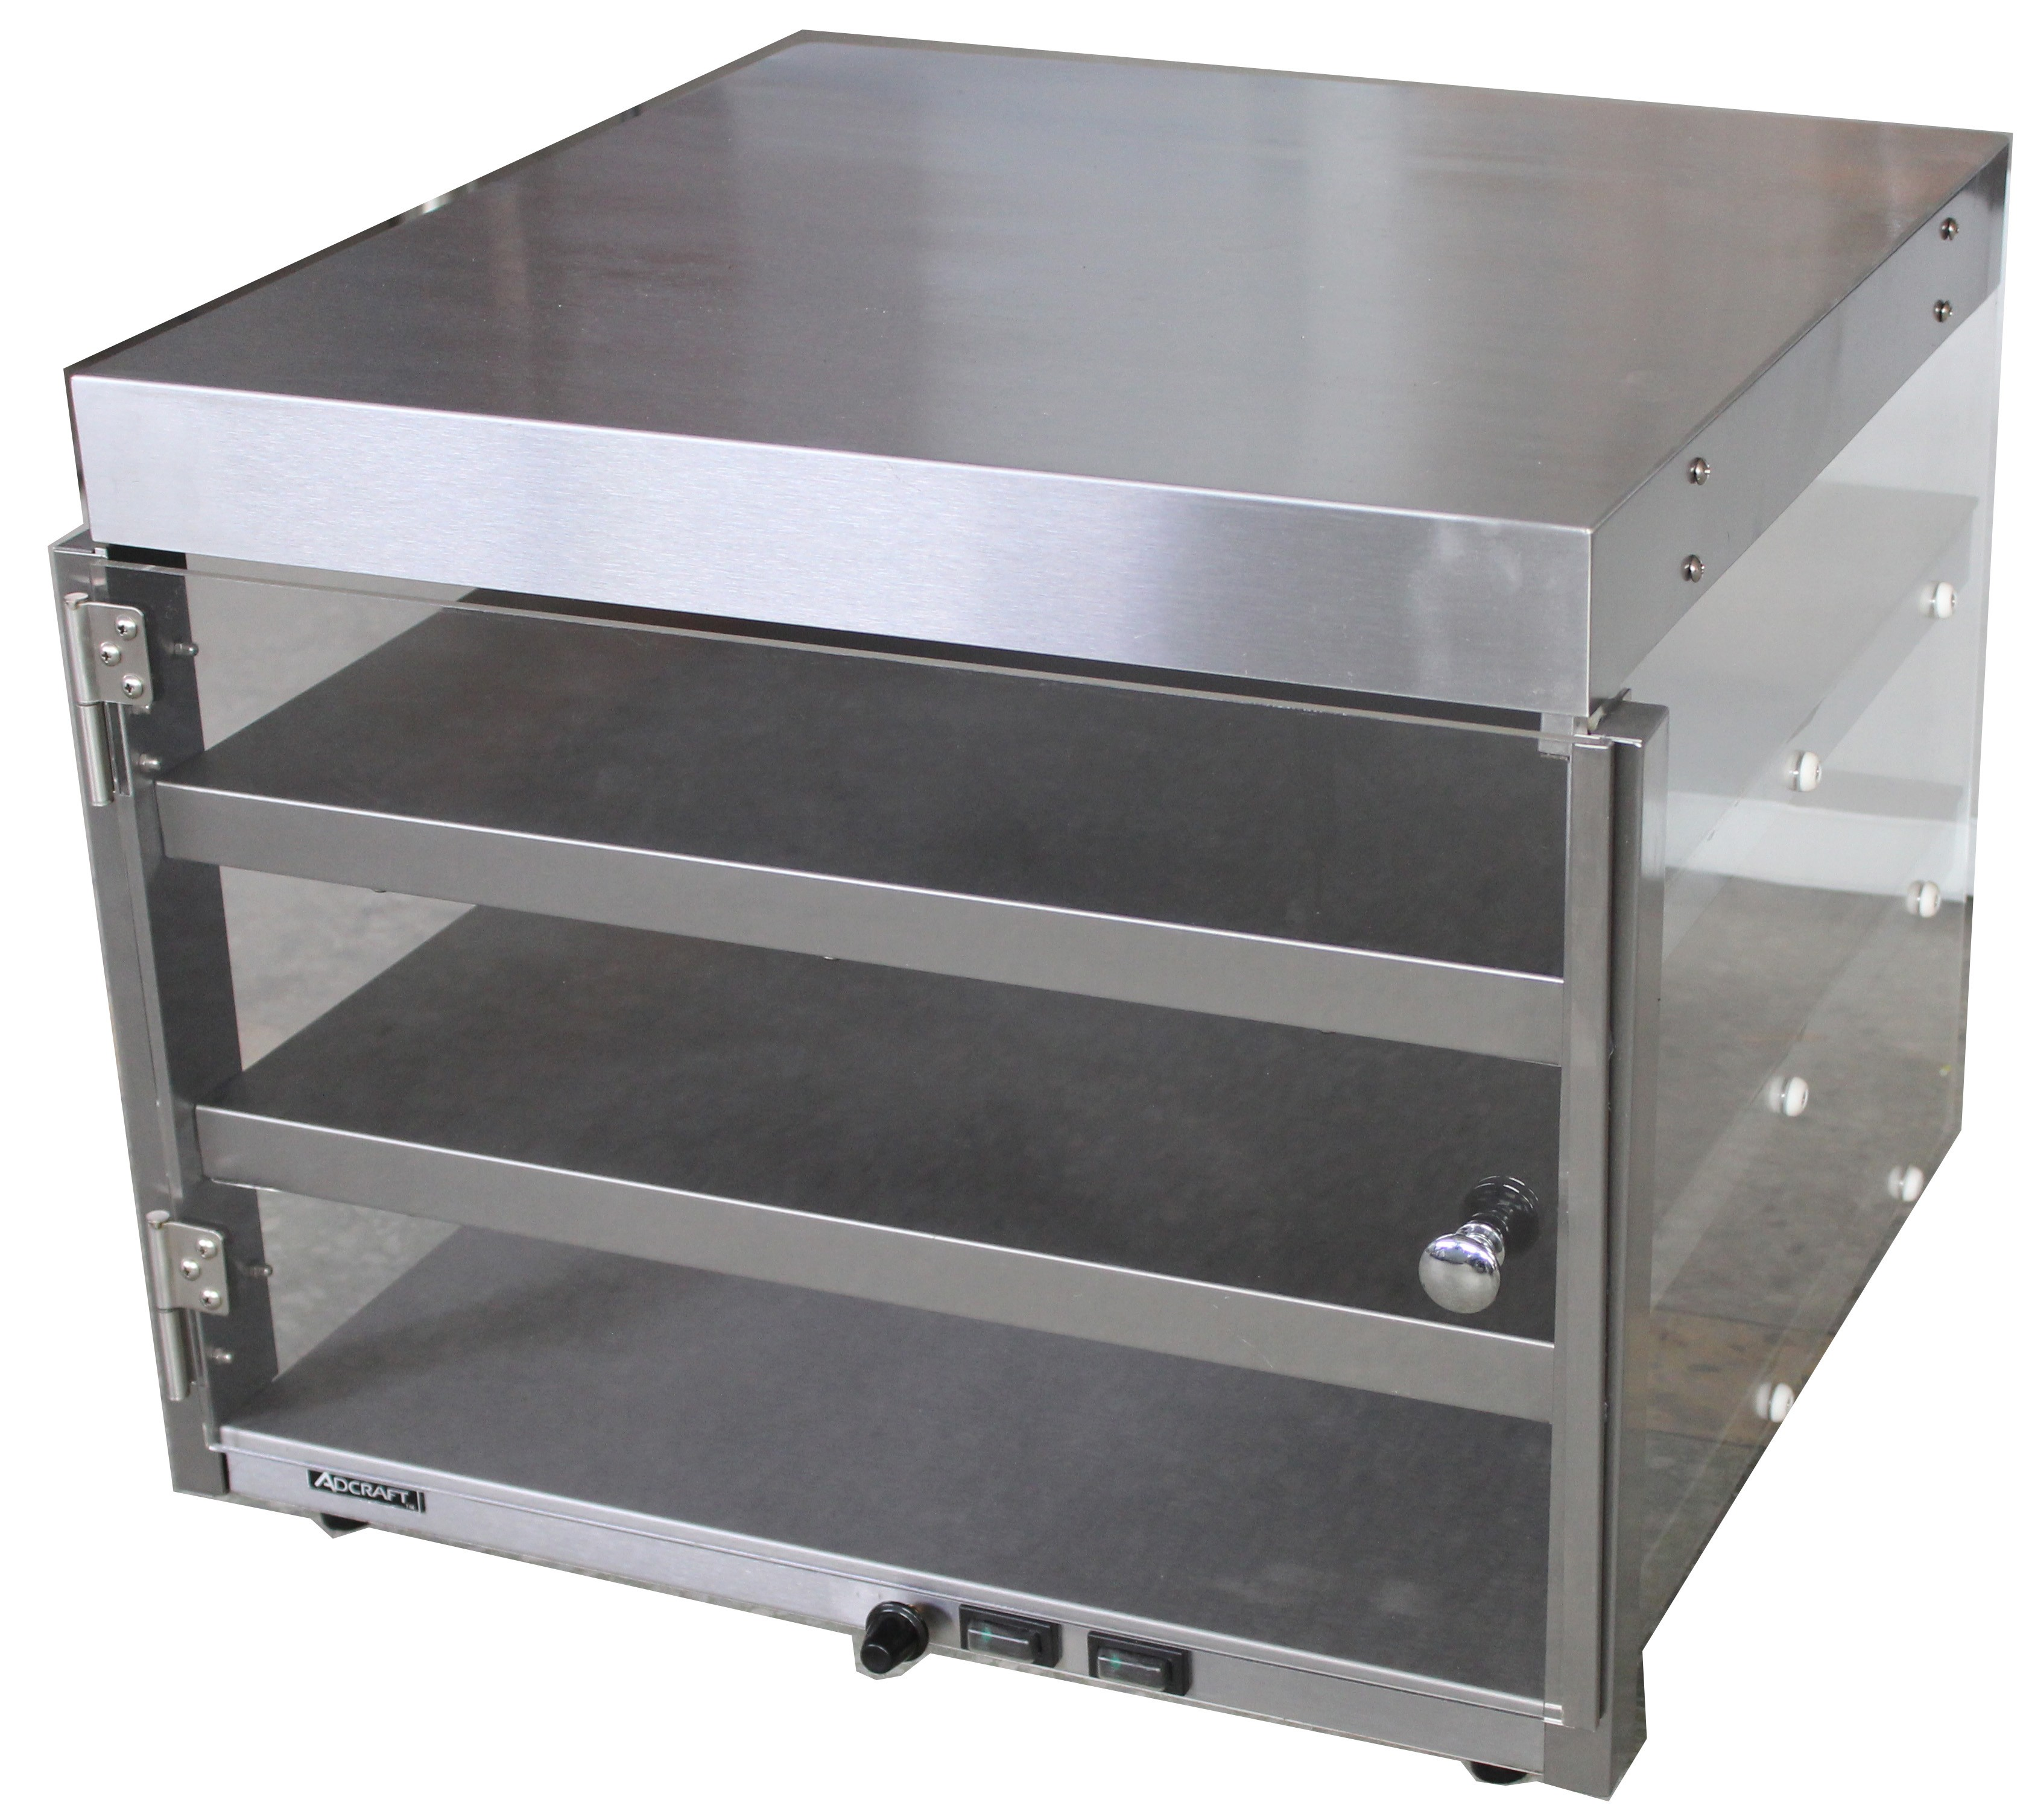 "Adcraft PW-20 Countertop Pizza Merchandiser for 20"" Pizzas"